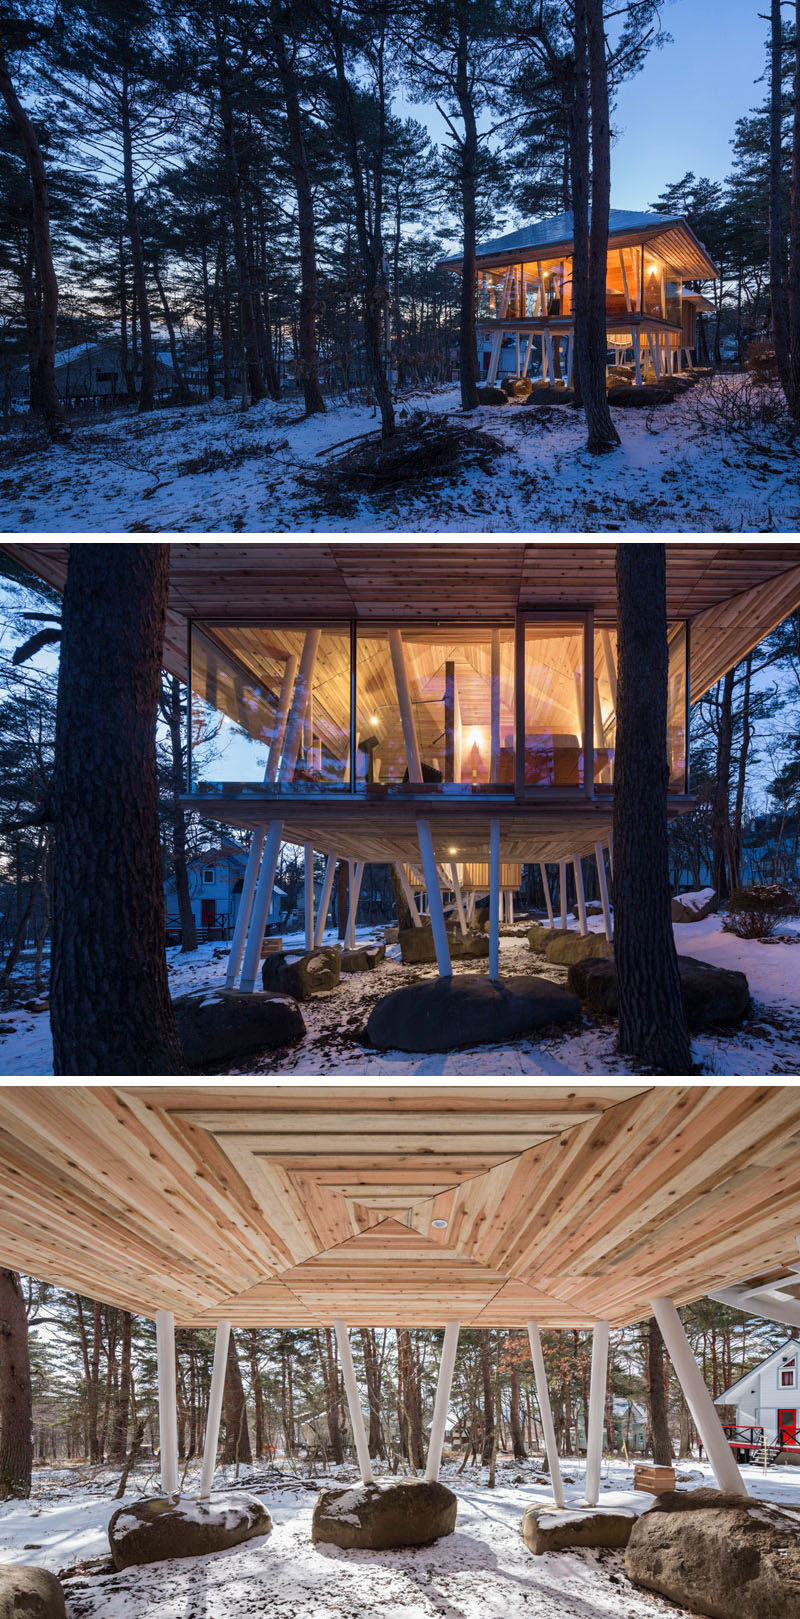 Architecture firm Life Style Koubou, have designed the 'One Year Project', a vacation home in Japan that features two separate buildings positioned on stilts and connected by a bridge. #Architecture #ModernArchitecture #Stilts #VacationHome #JapaneseArchitecture